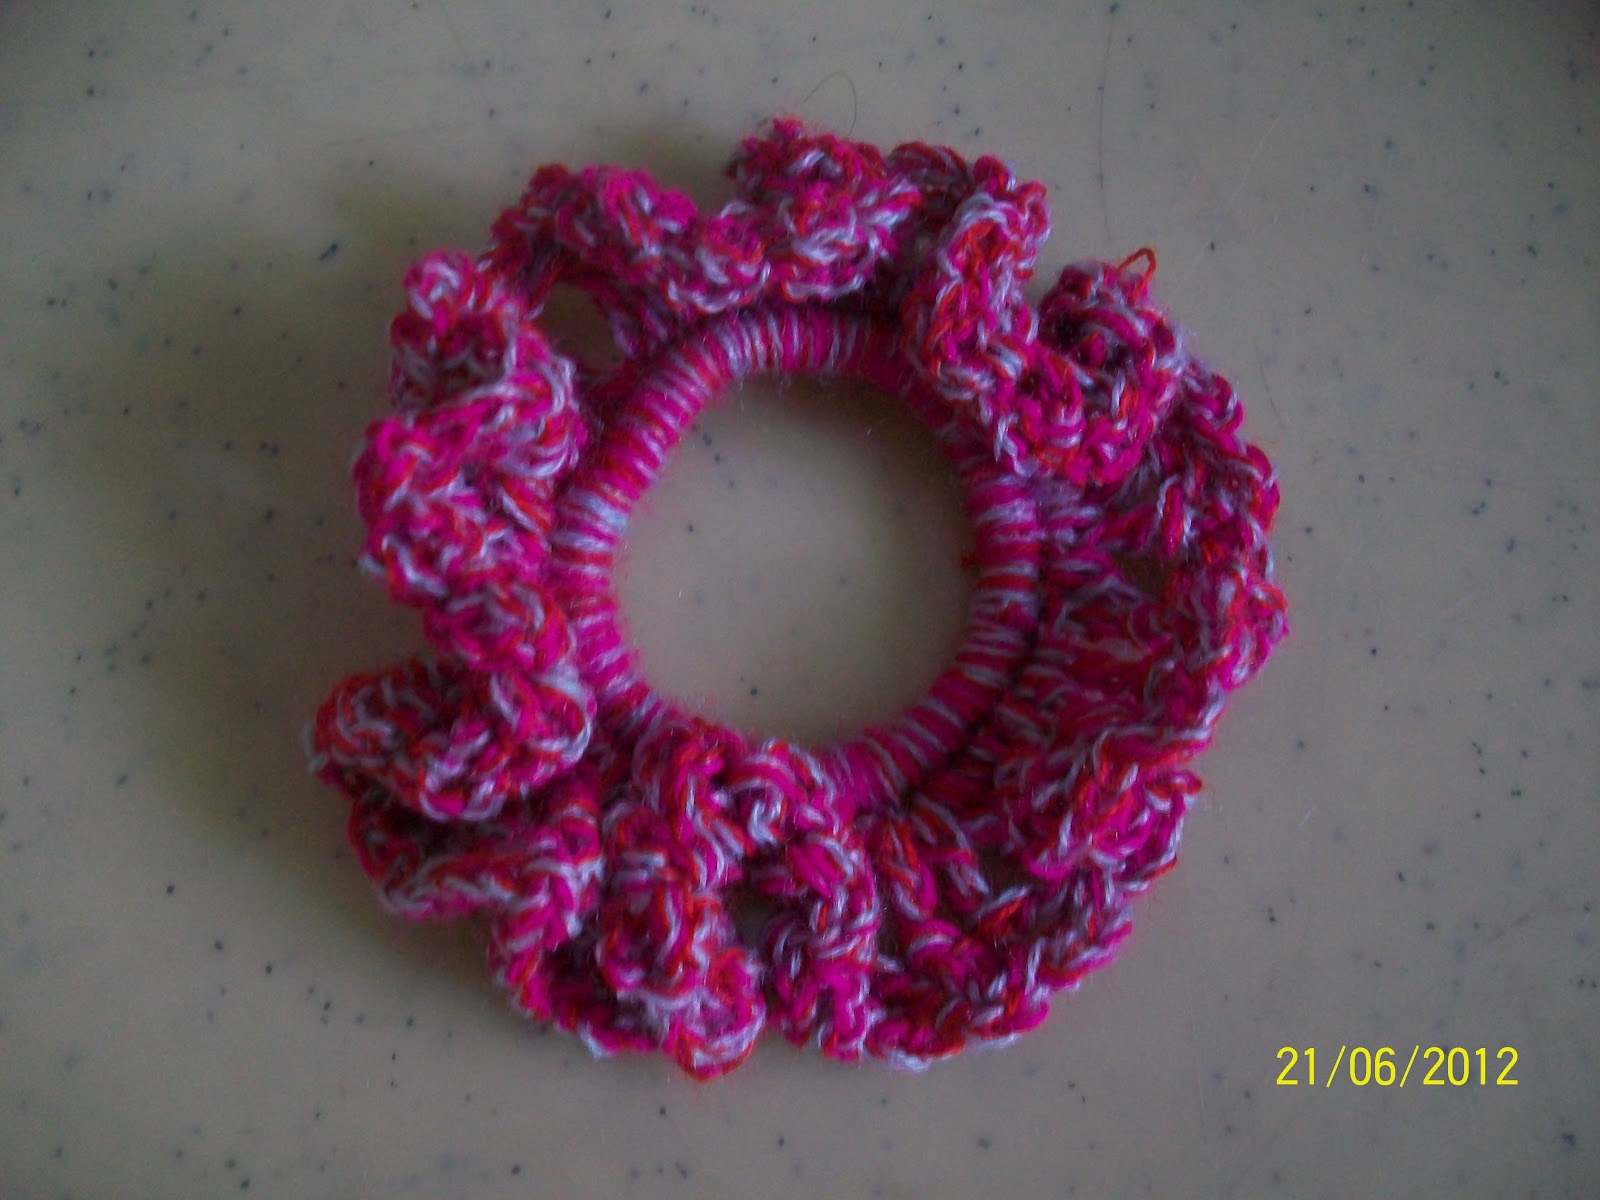 Crochet Hair Accessories : Girlies Crochet: Hair Accessories Crochet